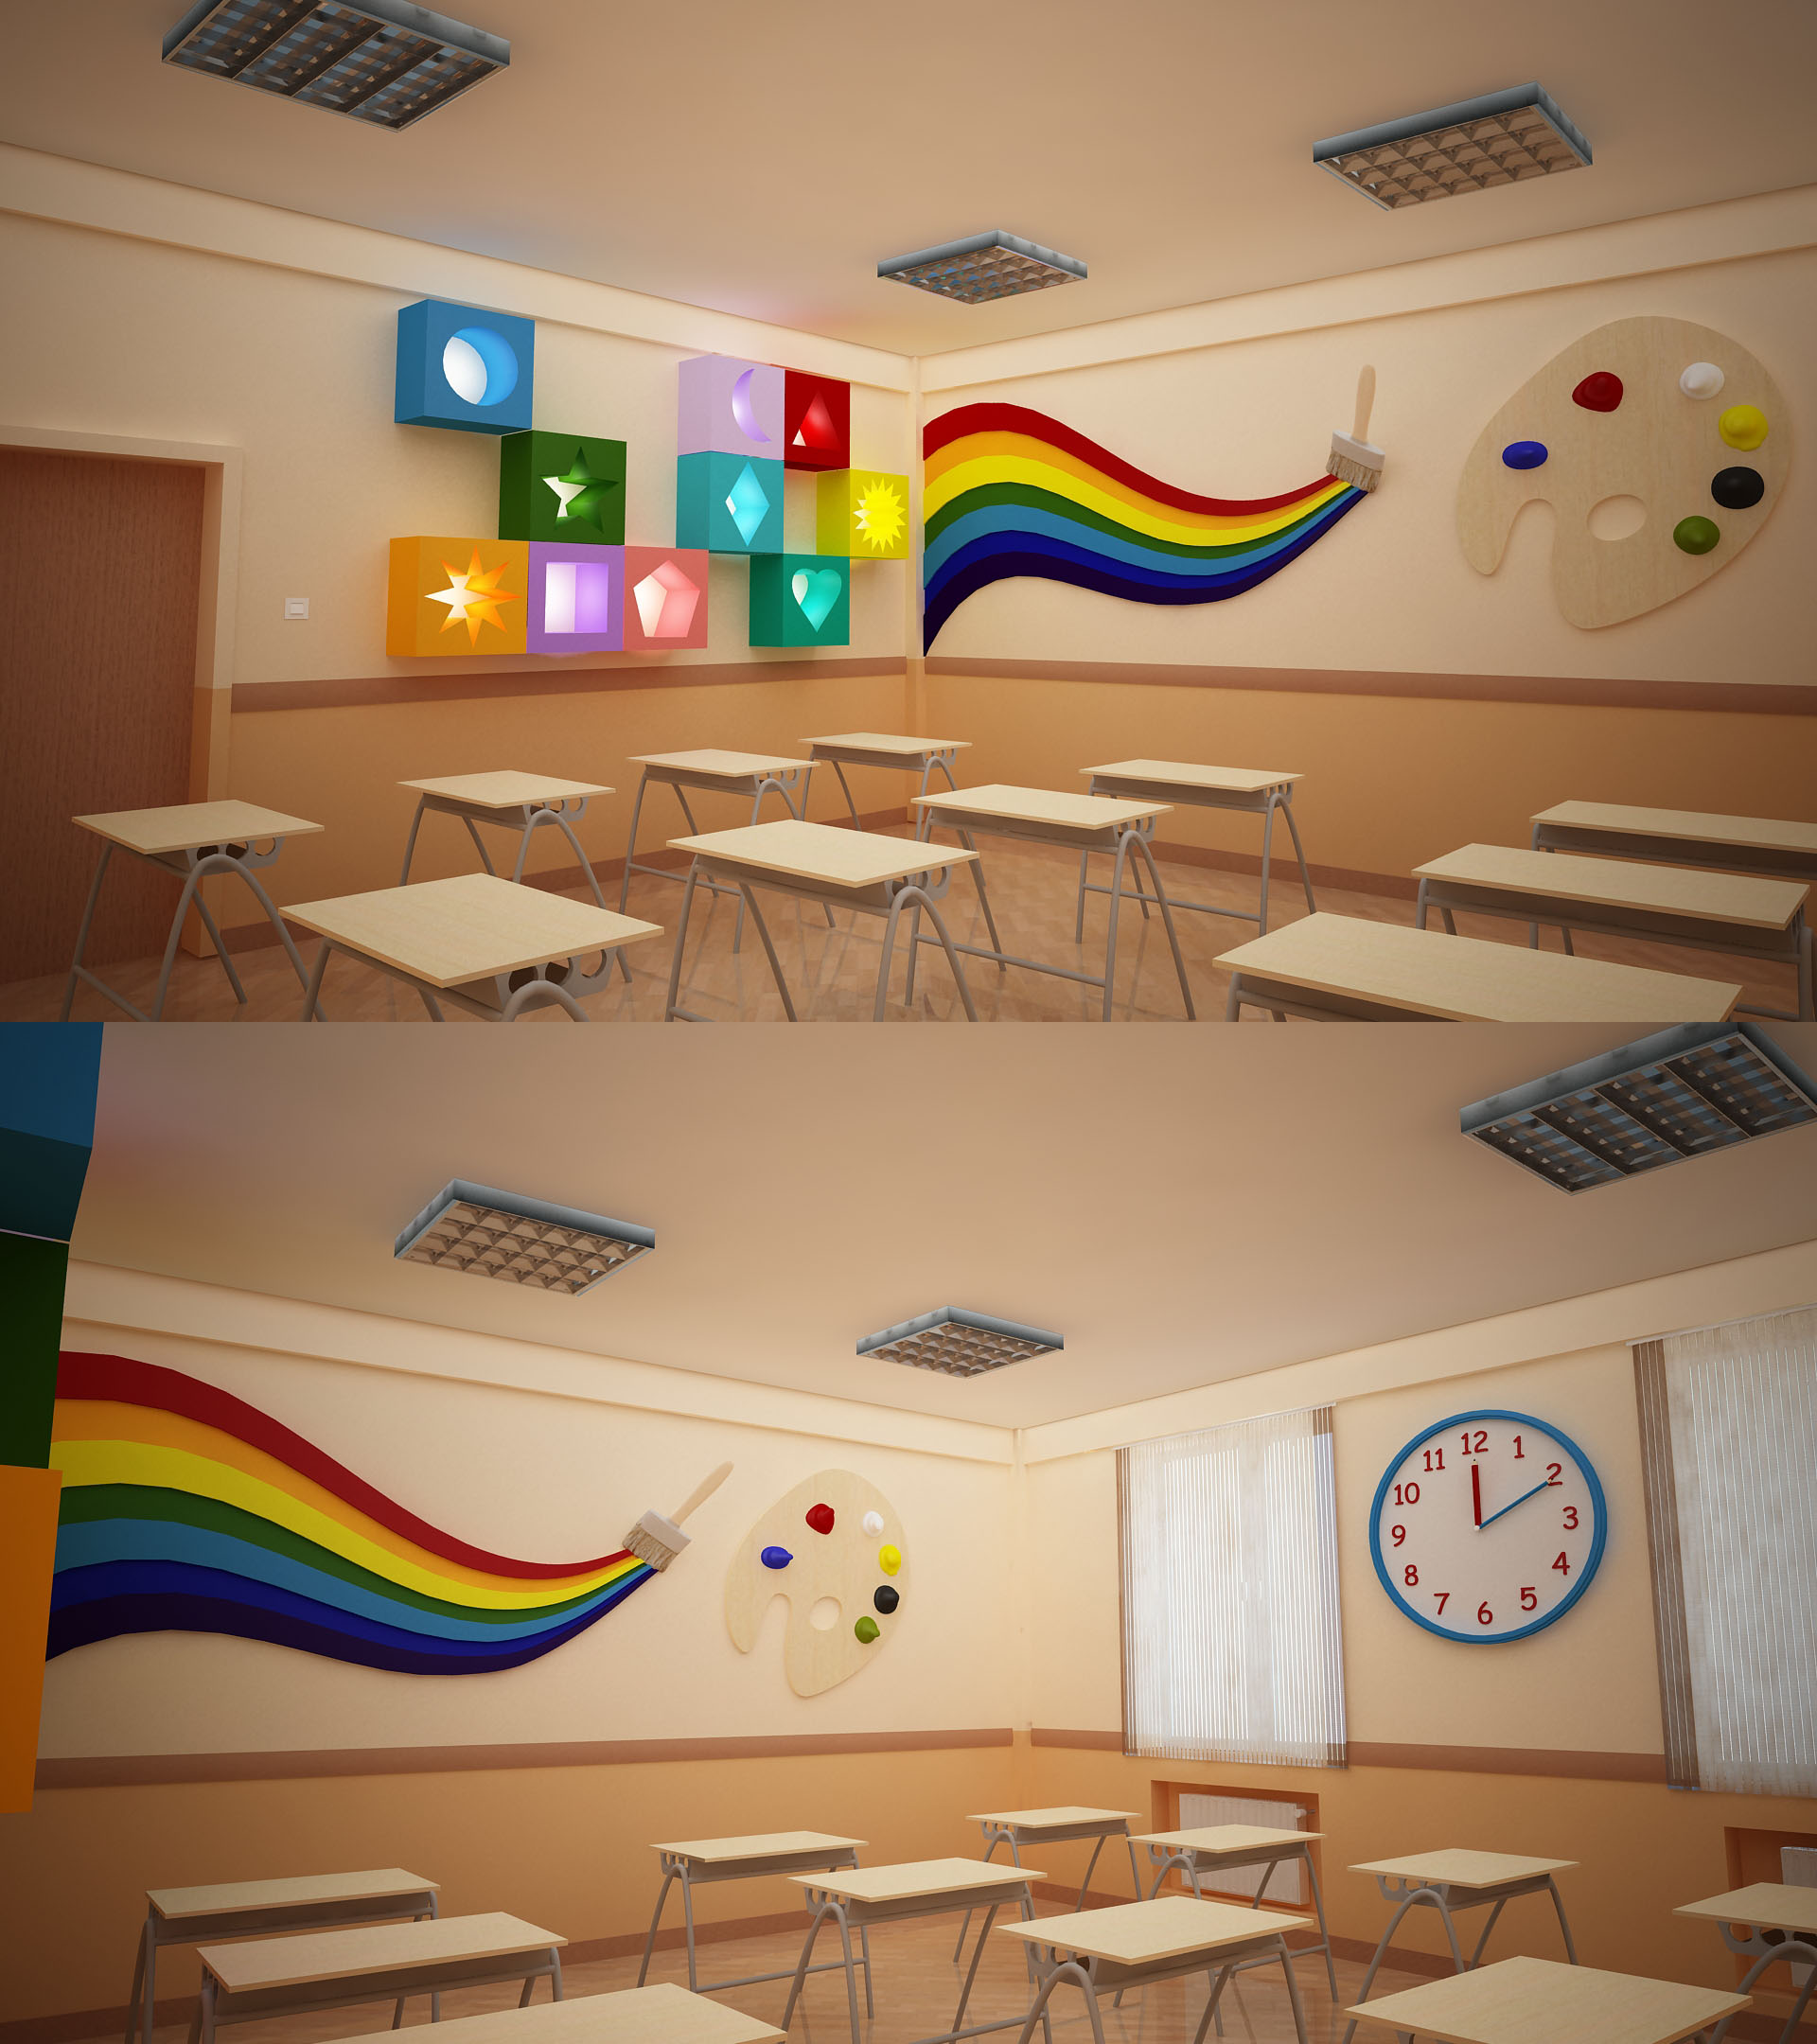 Aug 11,  · These classroom decor ideas are amazing. By Abigail Williams Summer is coming to a close and teachers across the country are gearing up for the school .